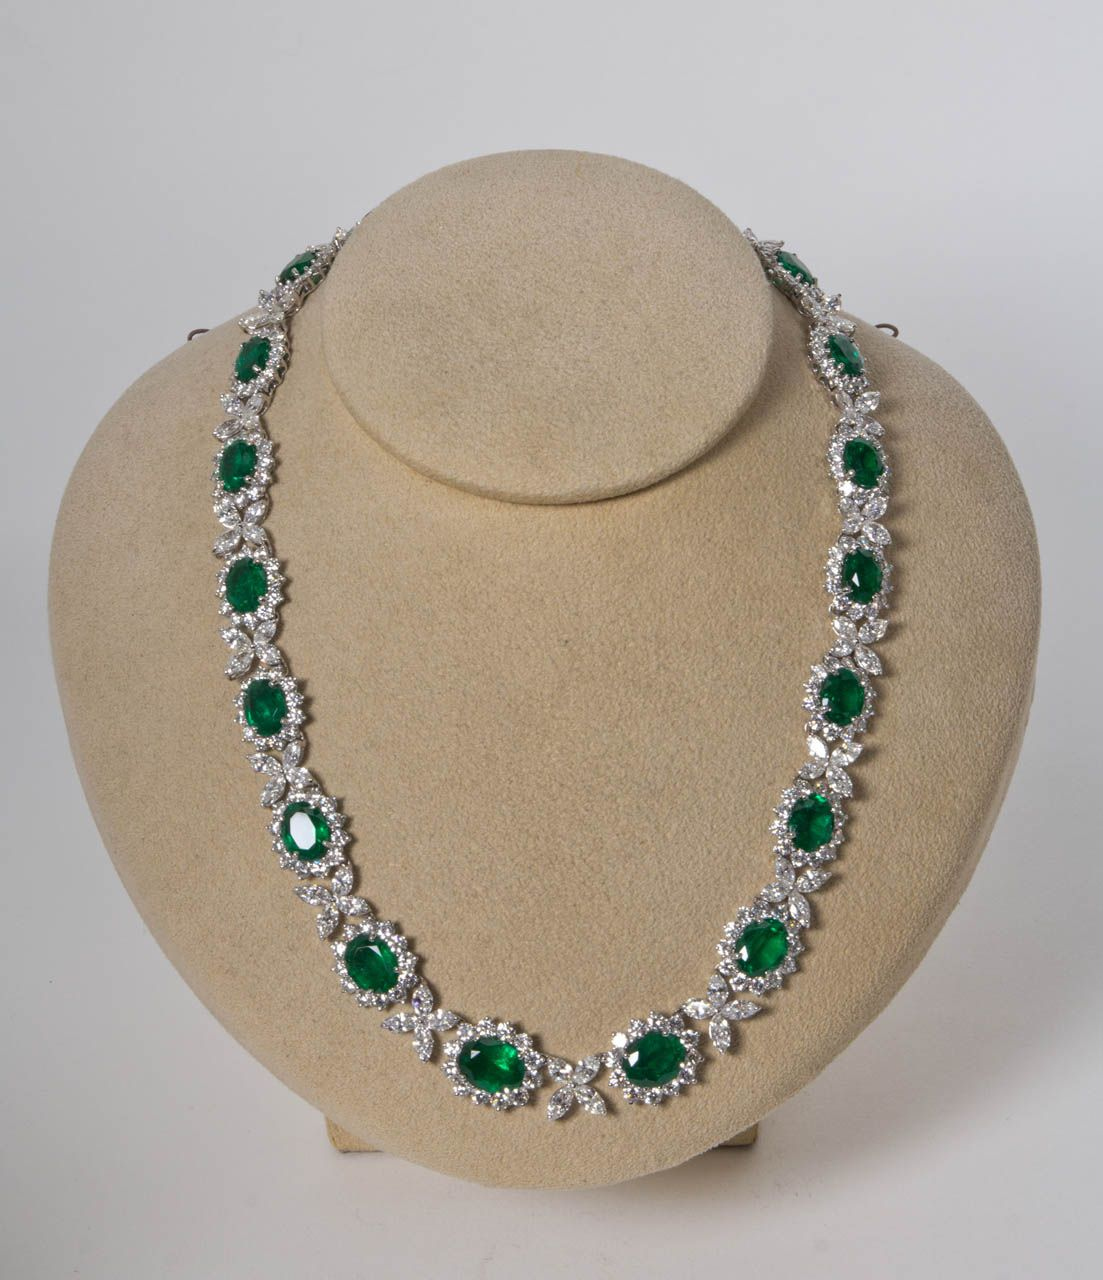 Vinitage Choker Necklaces - 2,322 For Sale at 1std